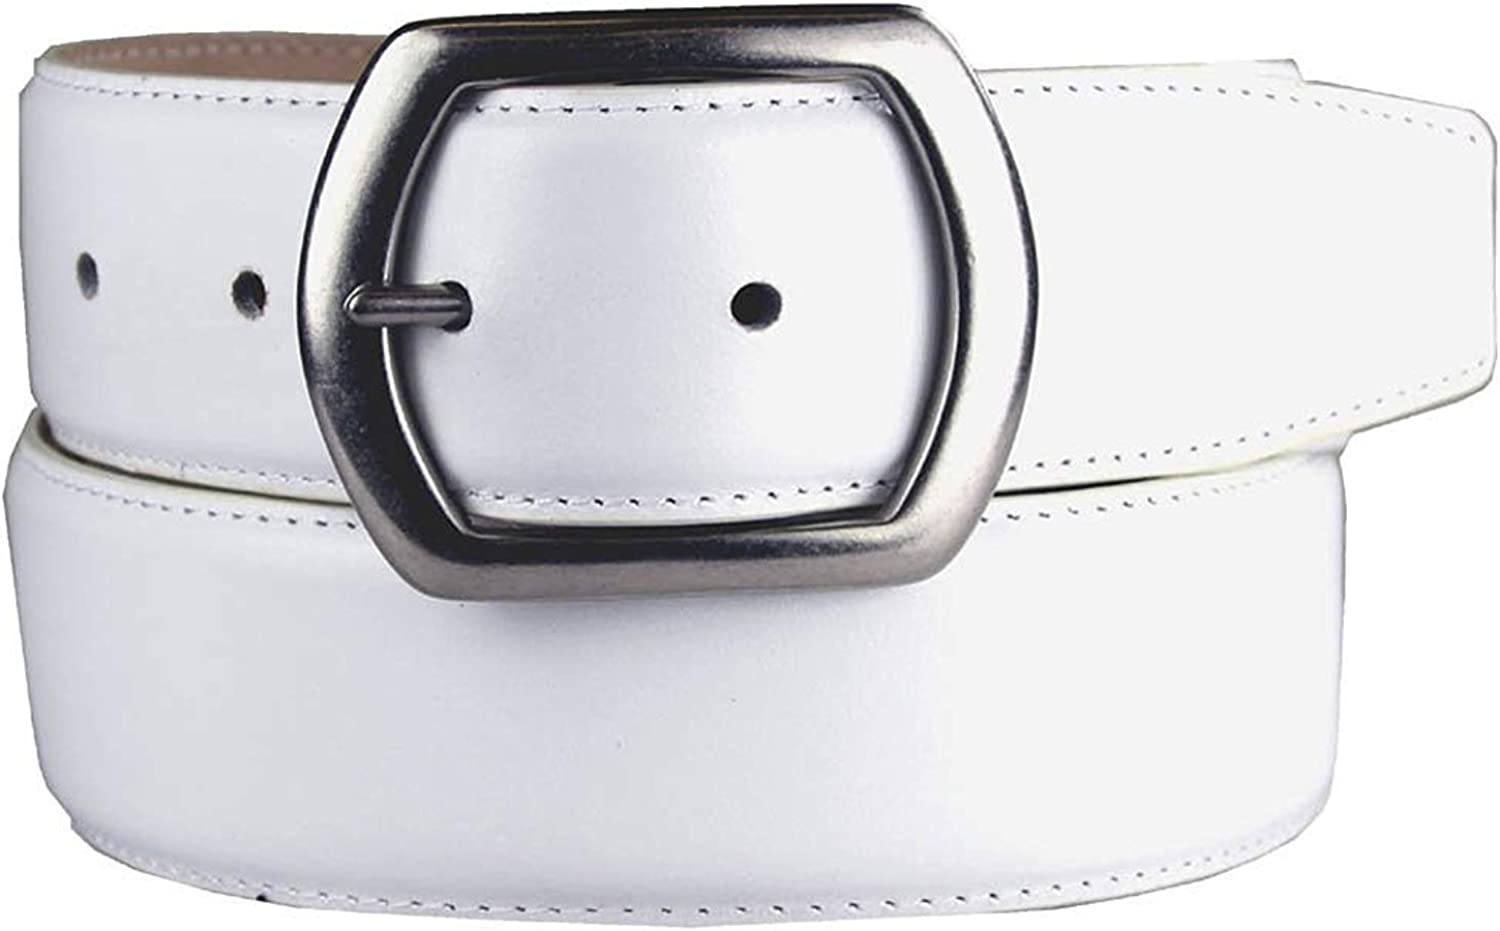 Pele Belt Men White 1-1//2 Wide Full Leather Stitched Edges Metal Geo Buckle